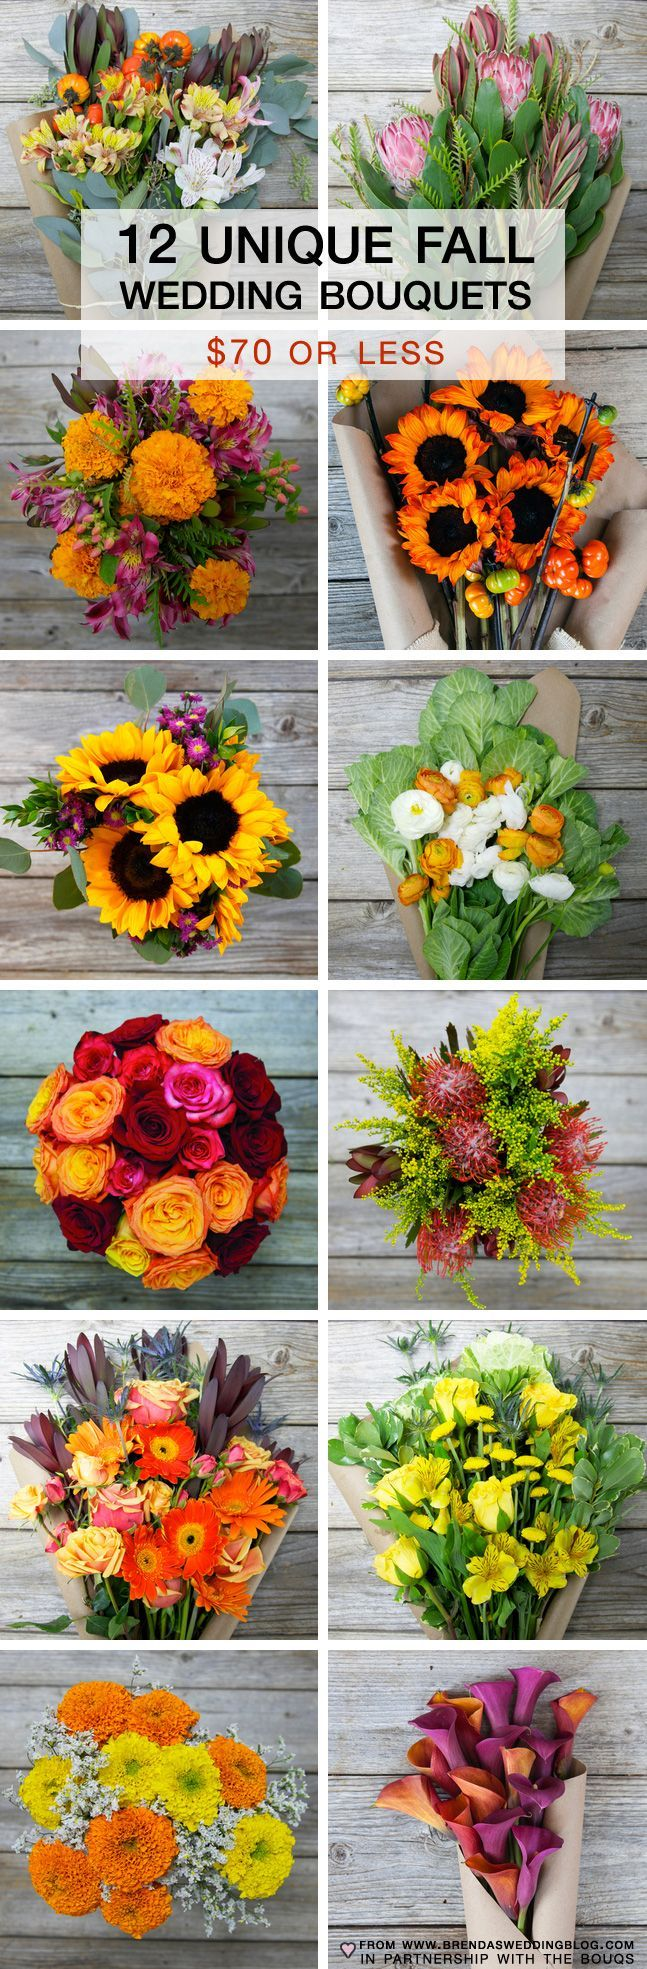 12 unique fall wedding bouquets priced between 40 70 unique 12 unique fall wedding bouquets priced between 40 70 izmirmasajfo